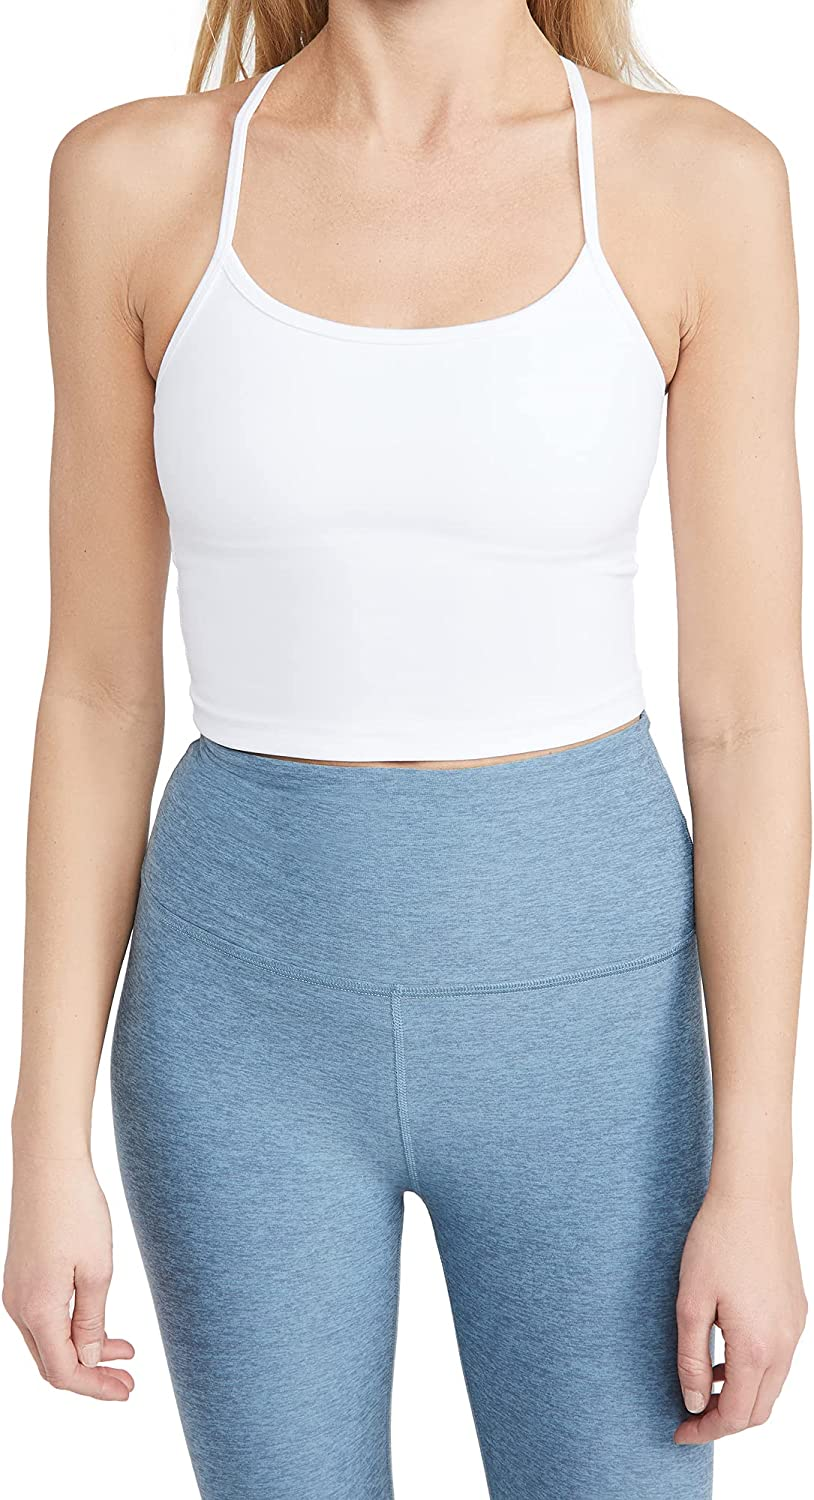 Beyond Yoga Womens Spacedye sold out Slim Popular products Cropped Top Racerback Tank